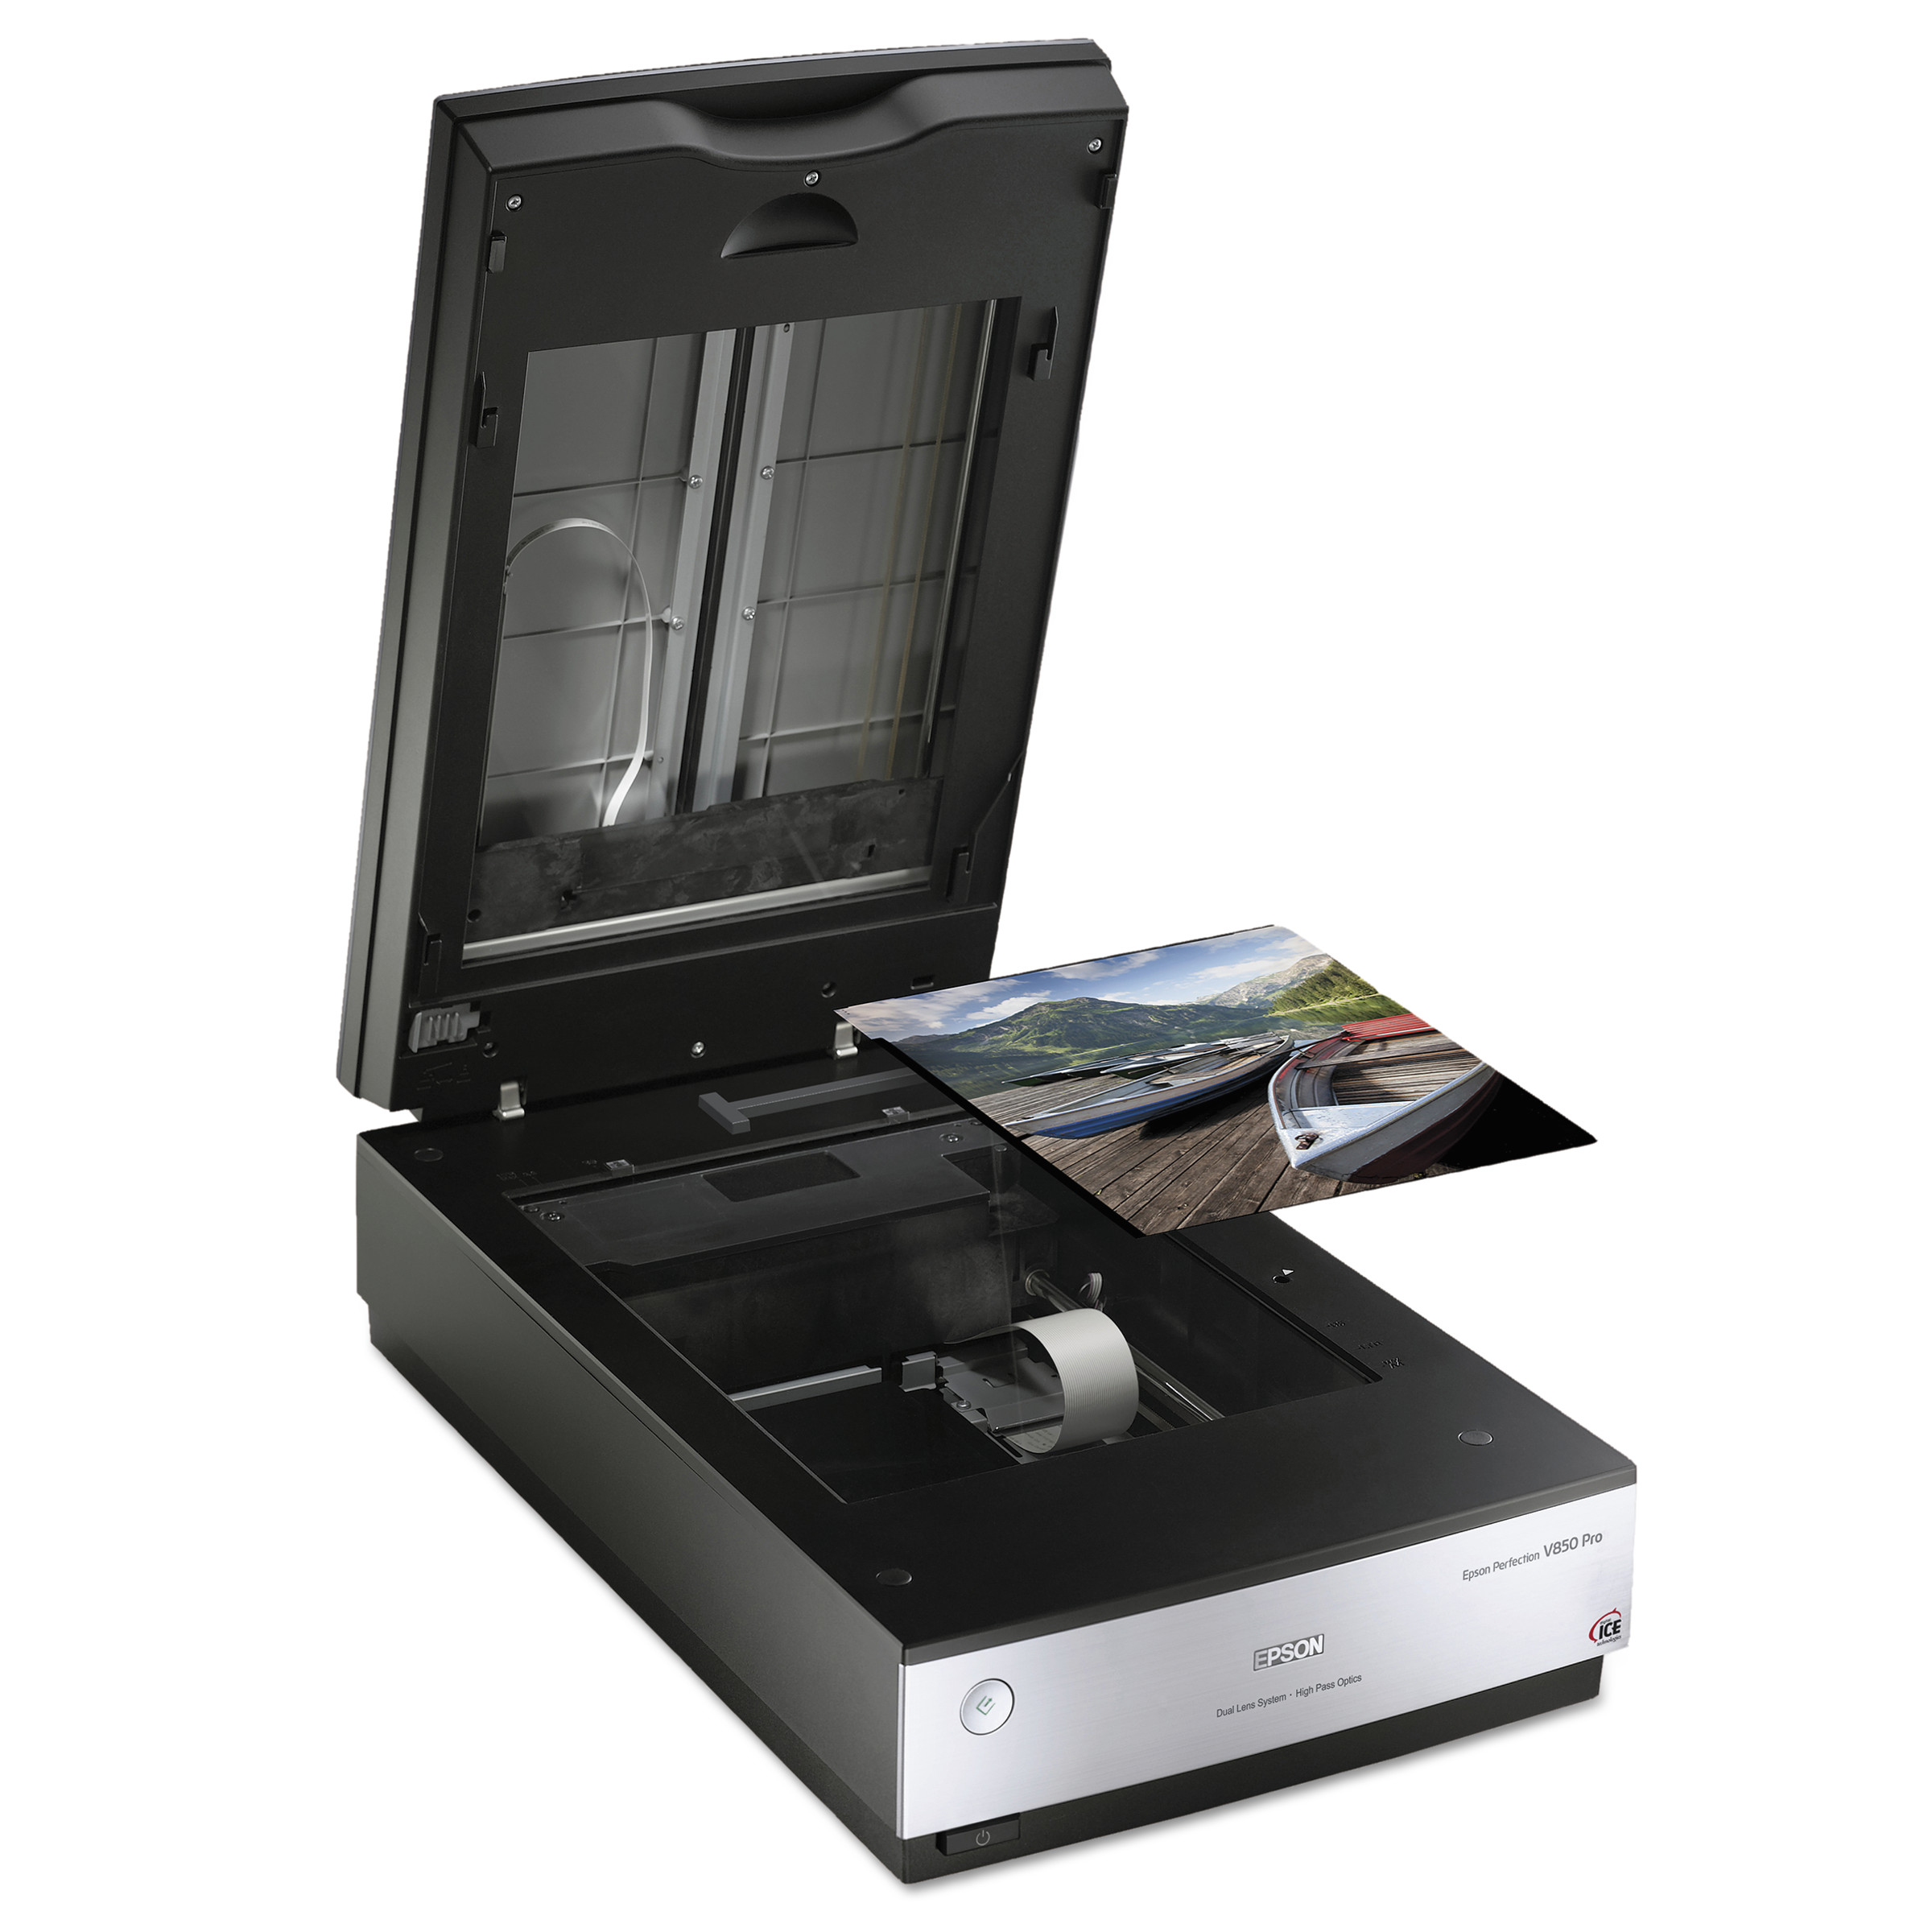 Epson Perfection V800 Photo Scanner, 6400 x 9600 dpi